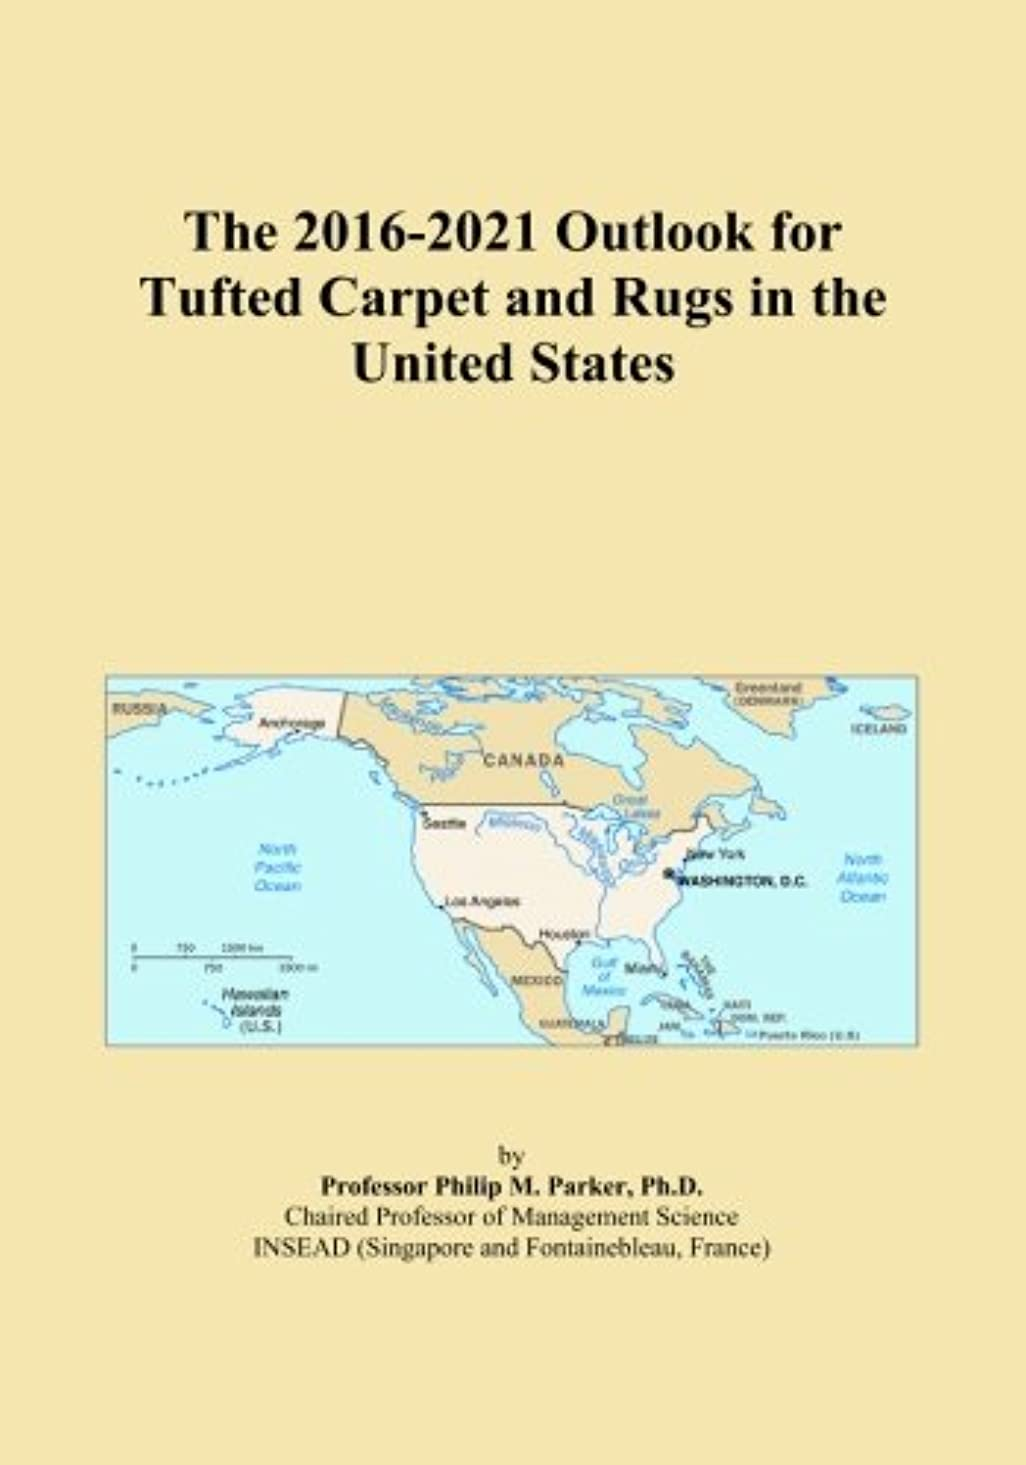 The 2016-2021 Outlook for Tufted Carpet and Rugs in the United States